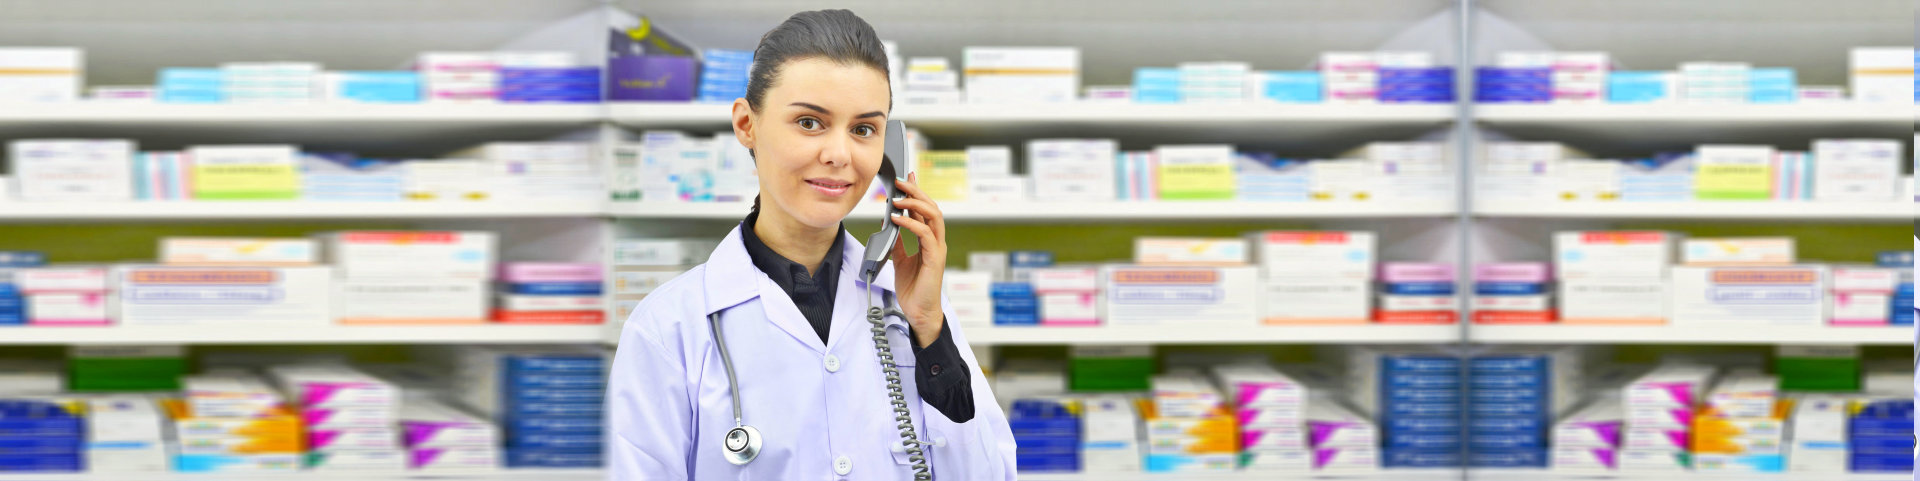 pharmacist making a phone call